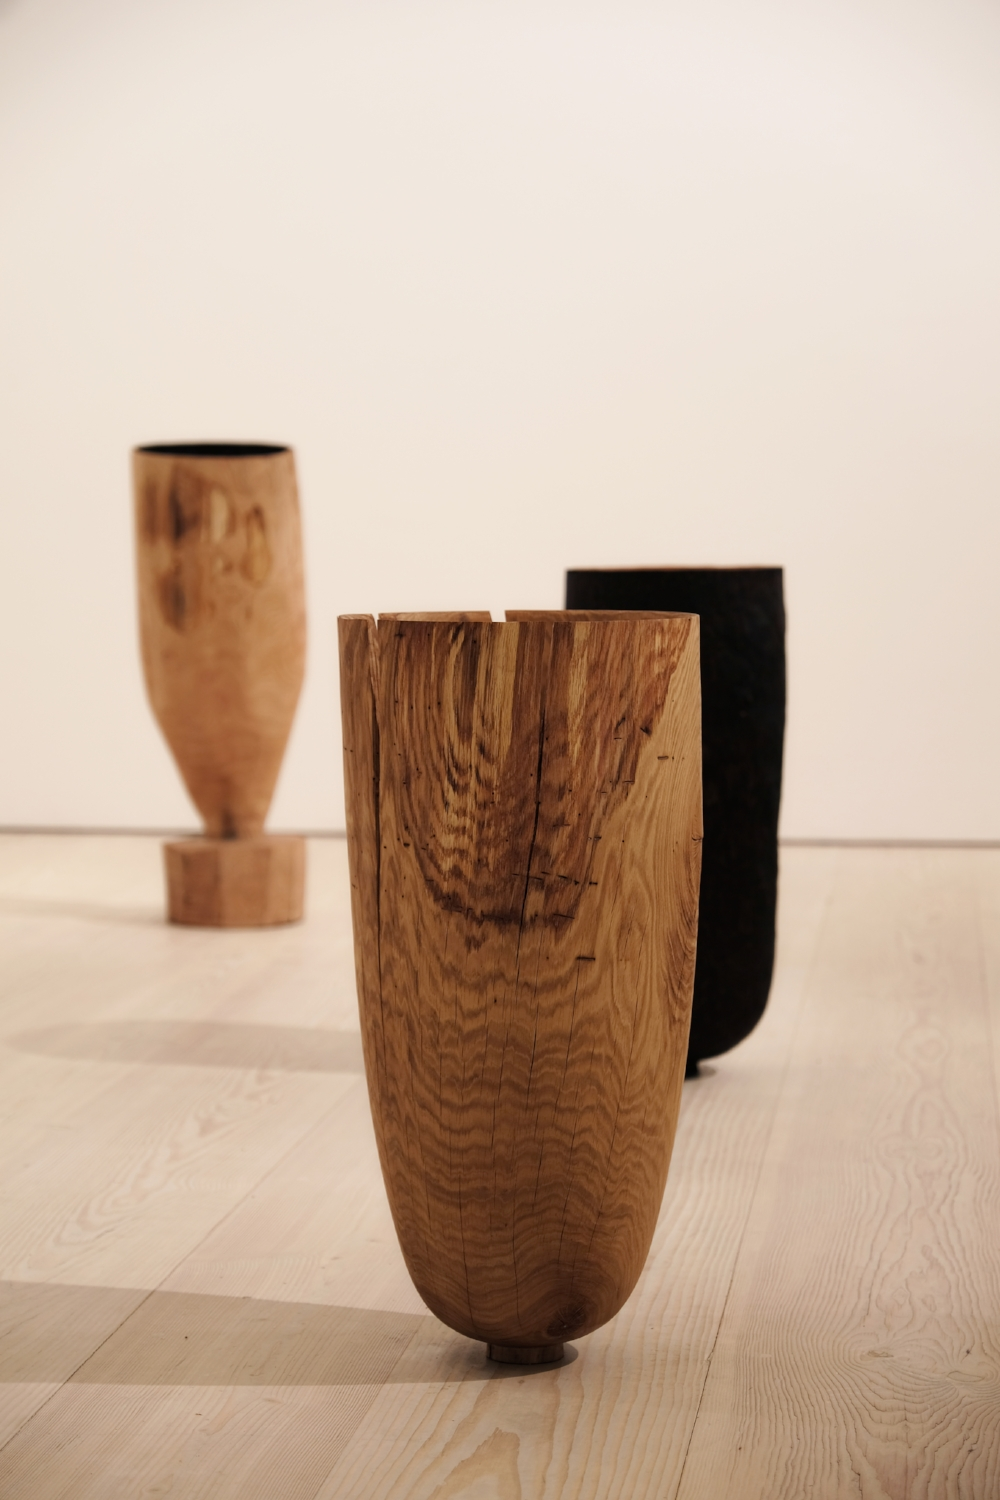 Hewn, Fallen, and Burnt Vessels  | green oak and sweet chestnut | 2018   Installation View, COLLECT, Saatchi Gallery, London